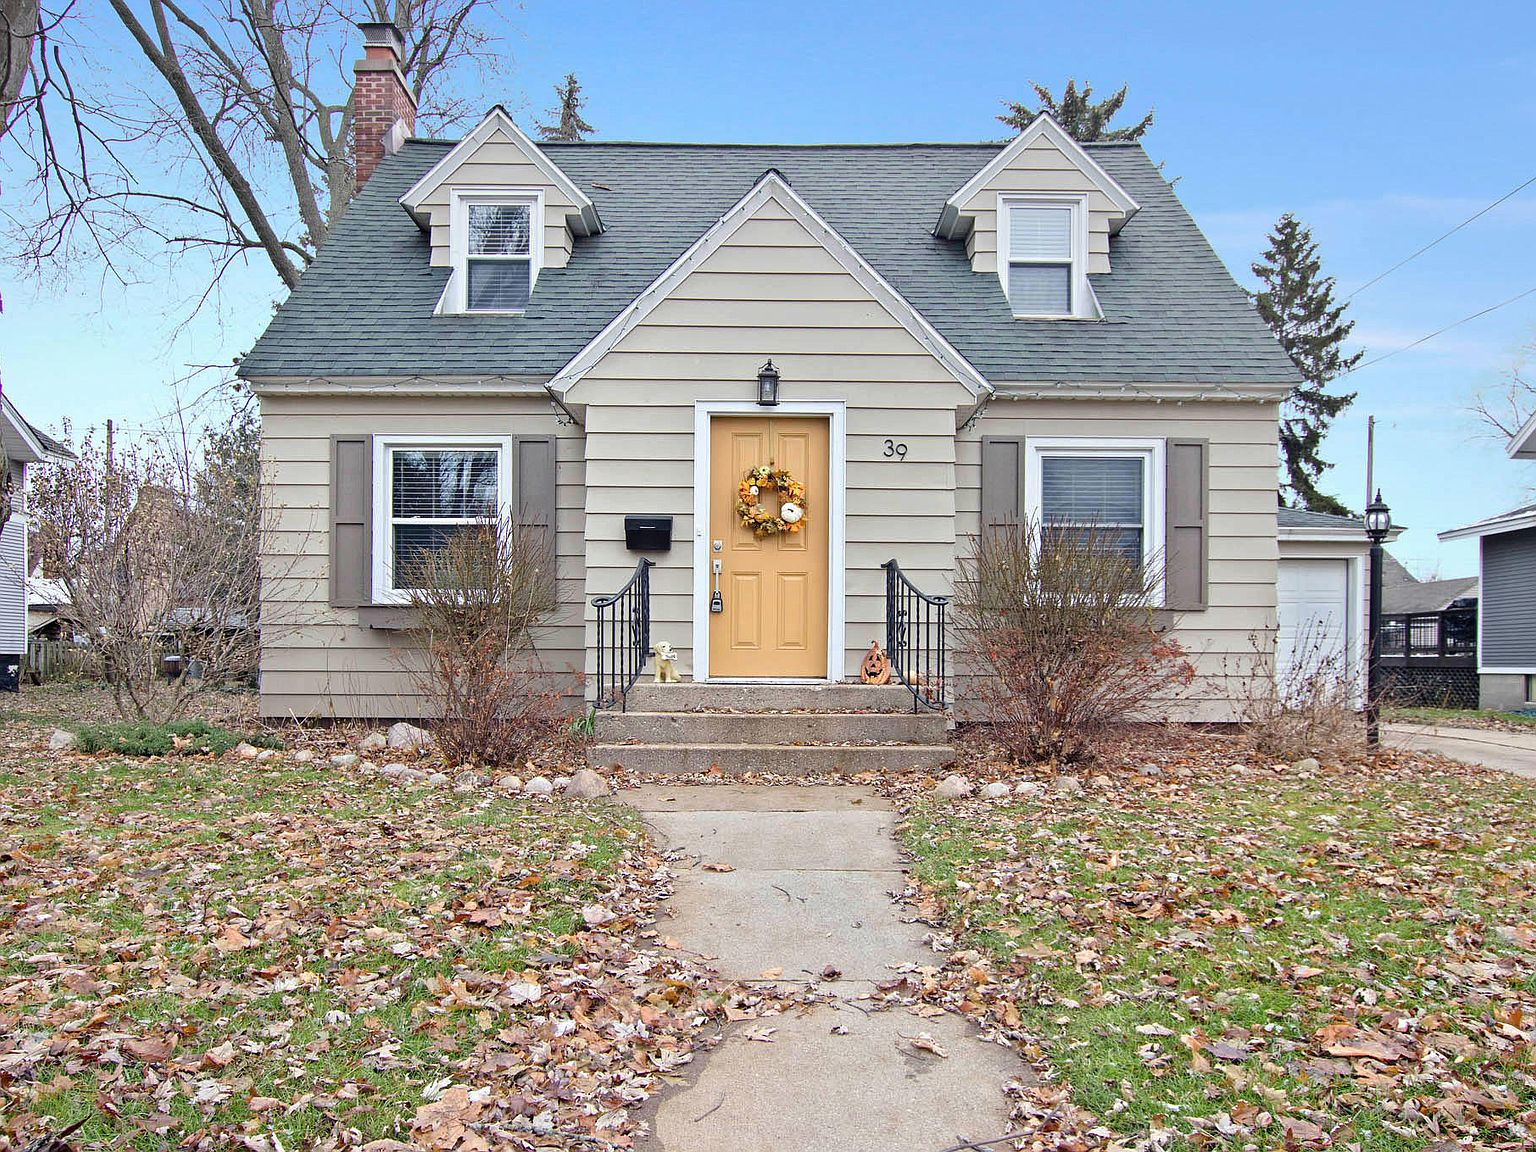 39 Lawrence Ave Zeeland Mi 49464 Zillow